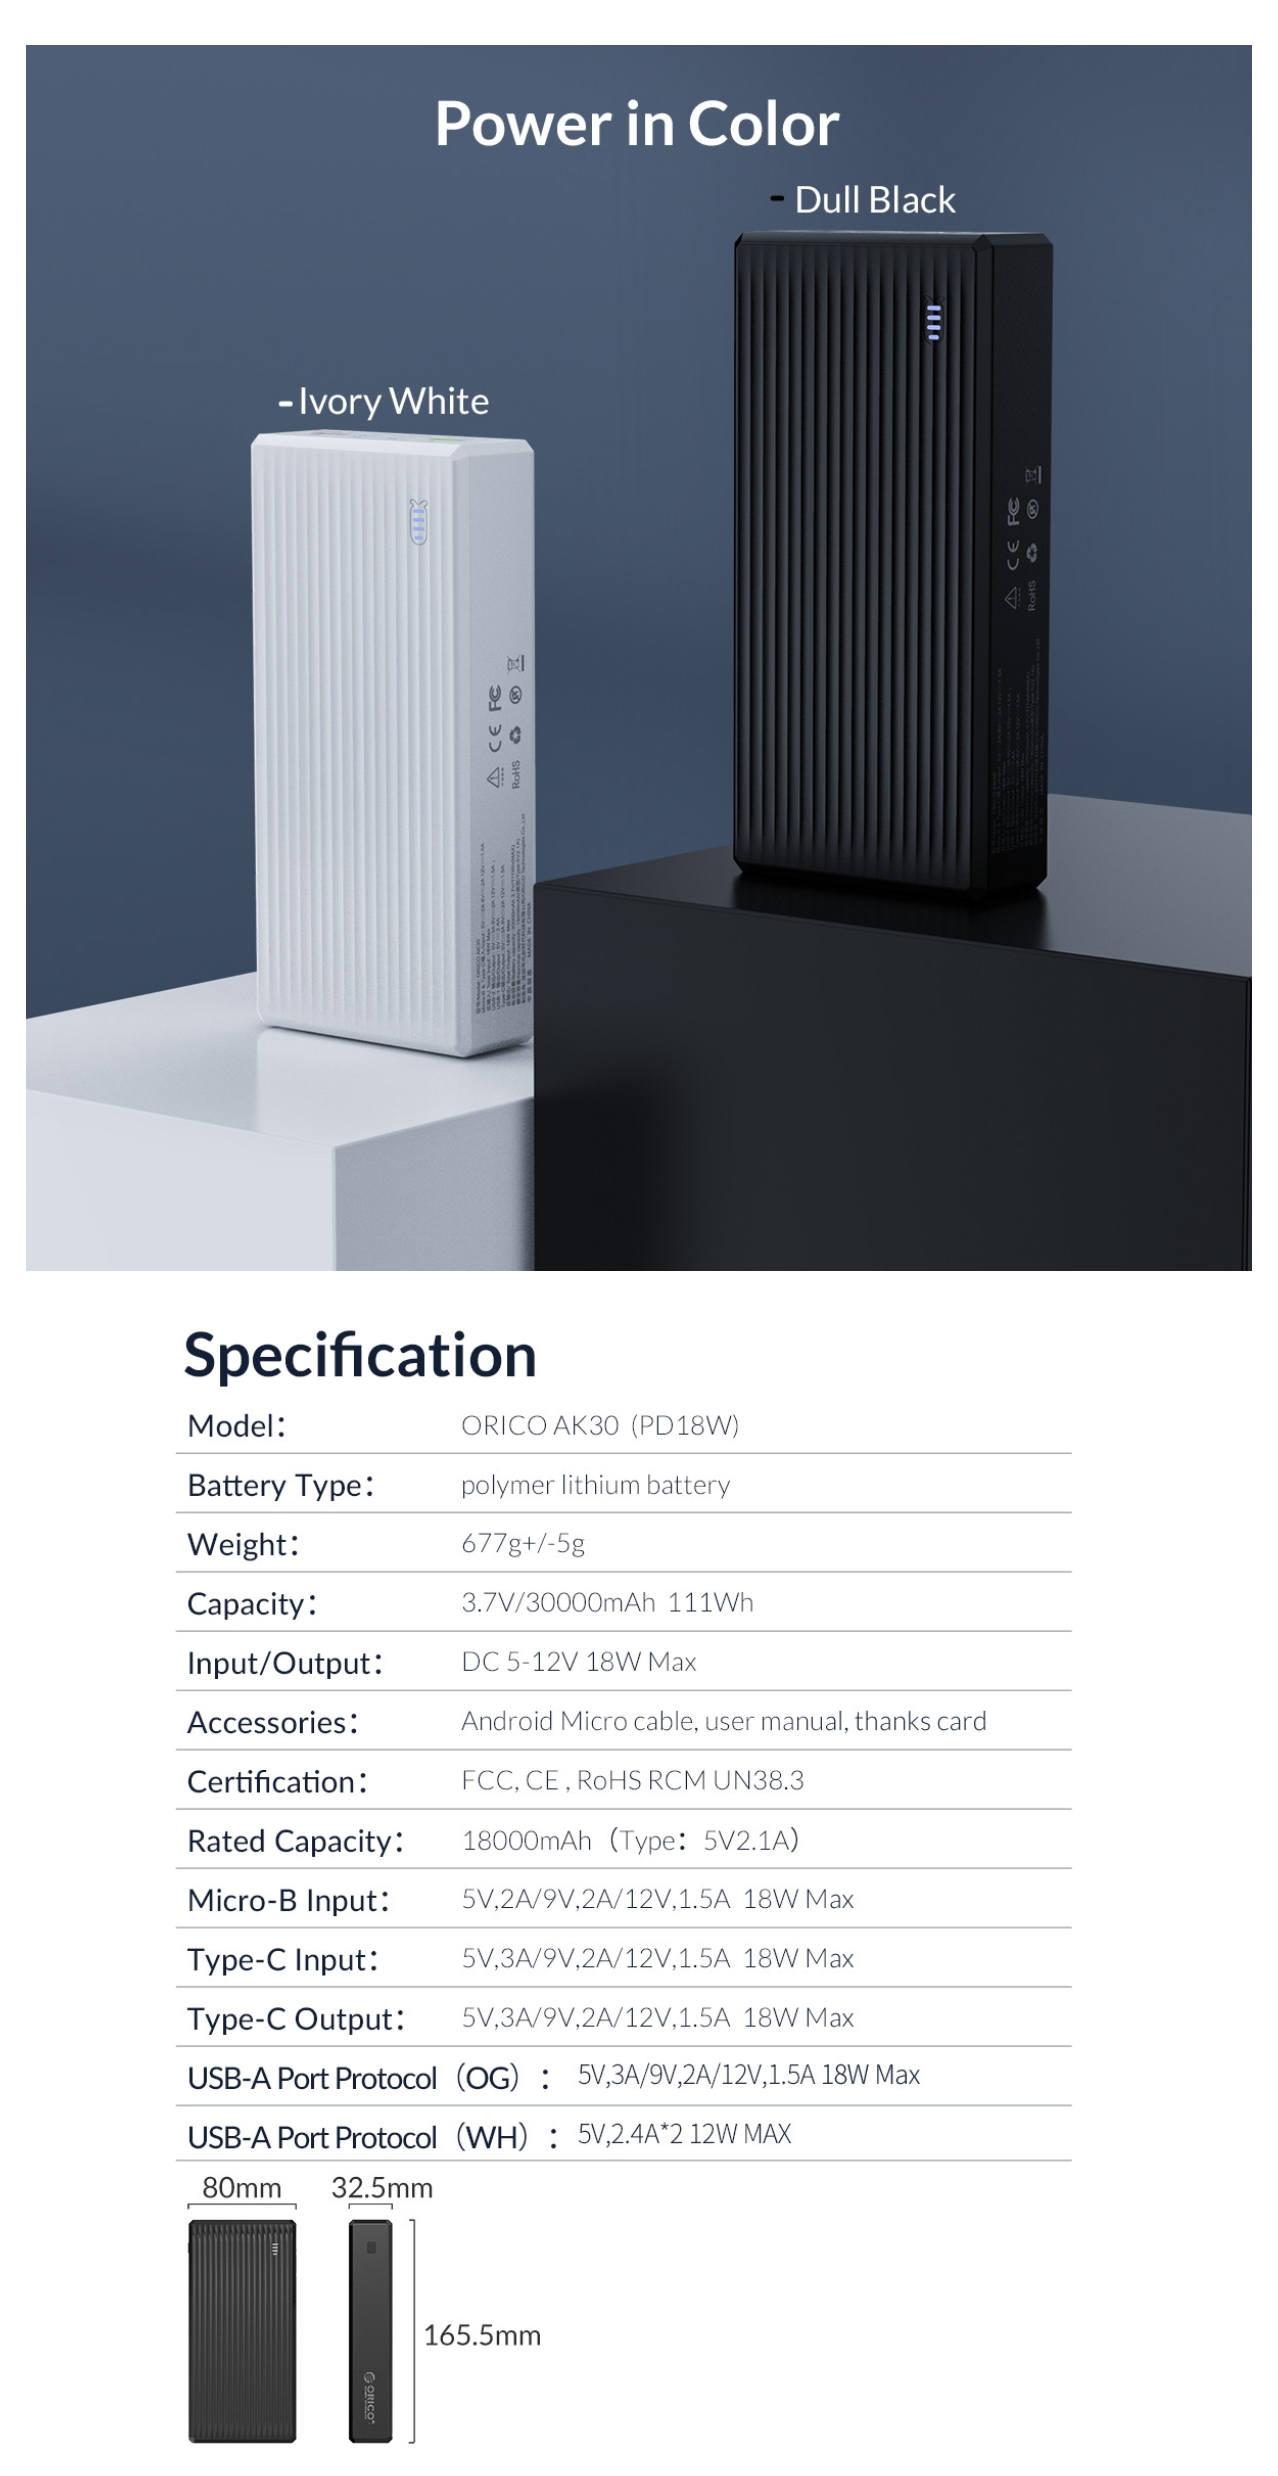 A large marketing image providing additional information about the product Orico AK30 30000mAh Lithium Power Bank - Additional alt info not provided